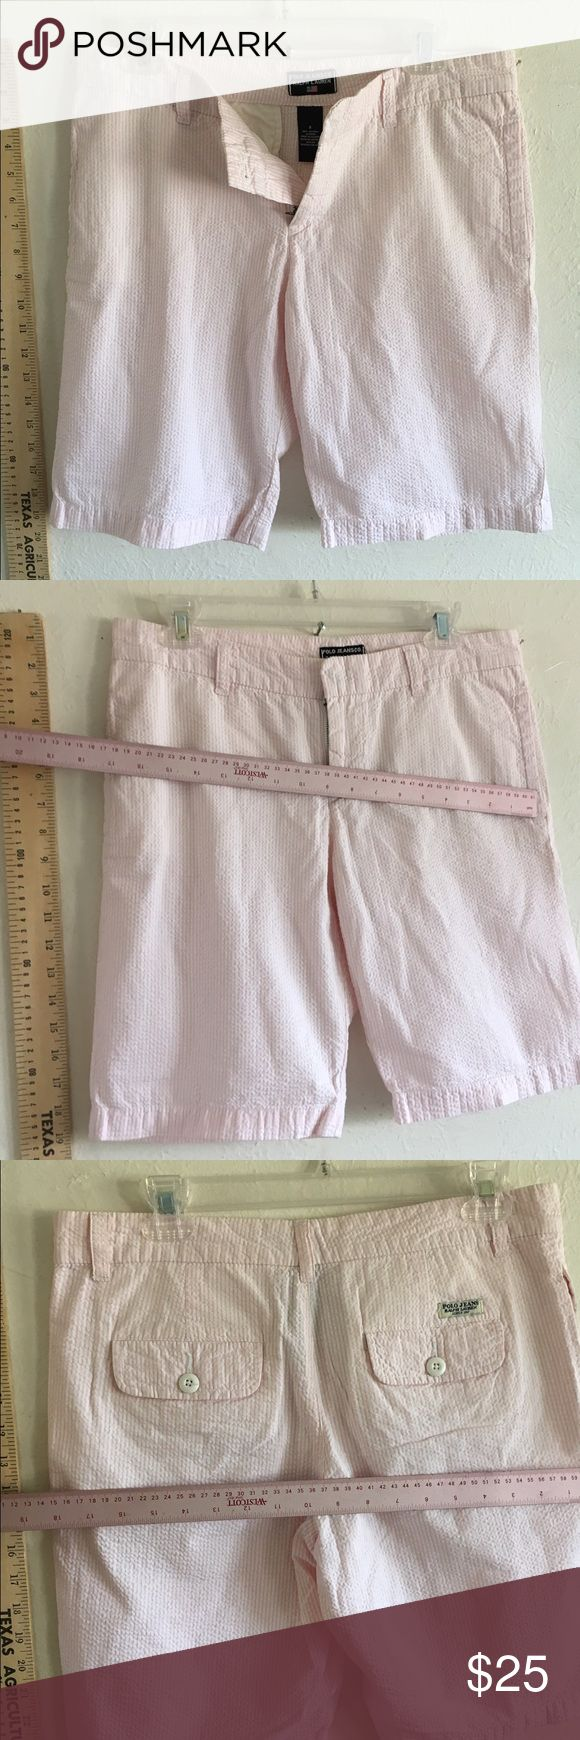 Pink gingham seersucker check shorts Ralph Lauren! Unworn shorts size 6 Ralph Lauren really cute Ralph Lauren Shorts